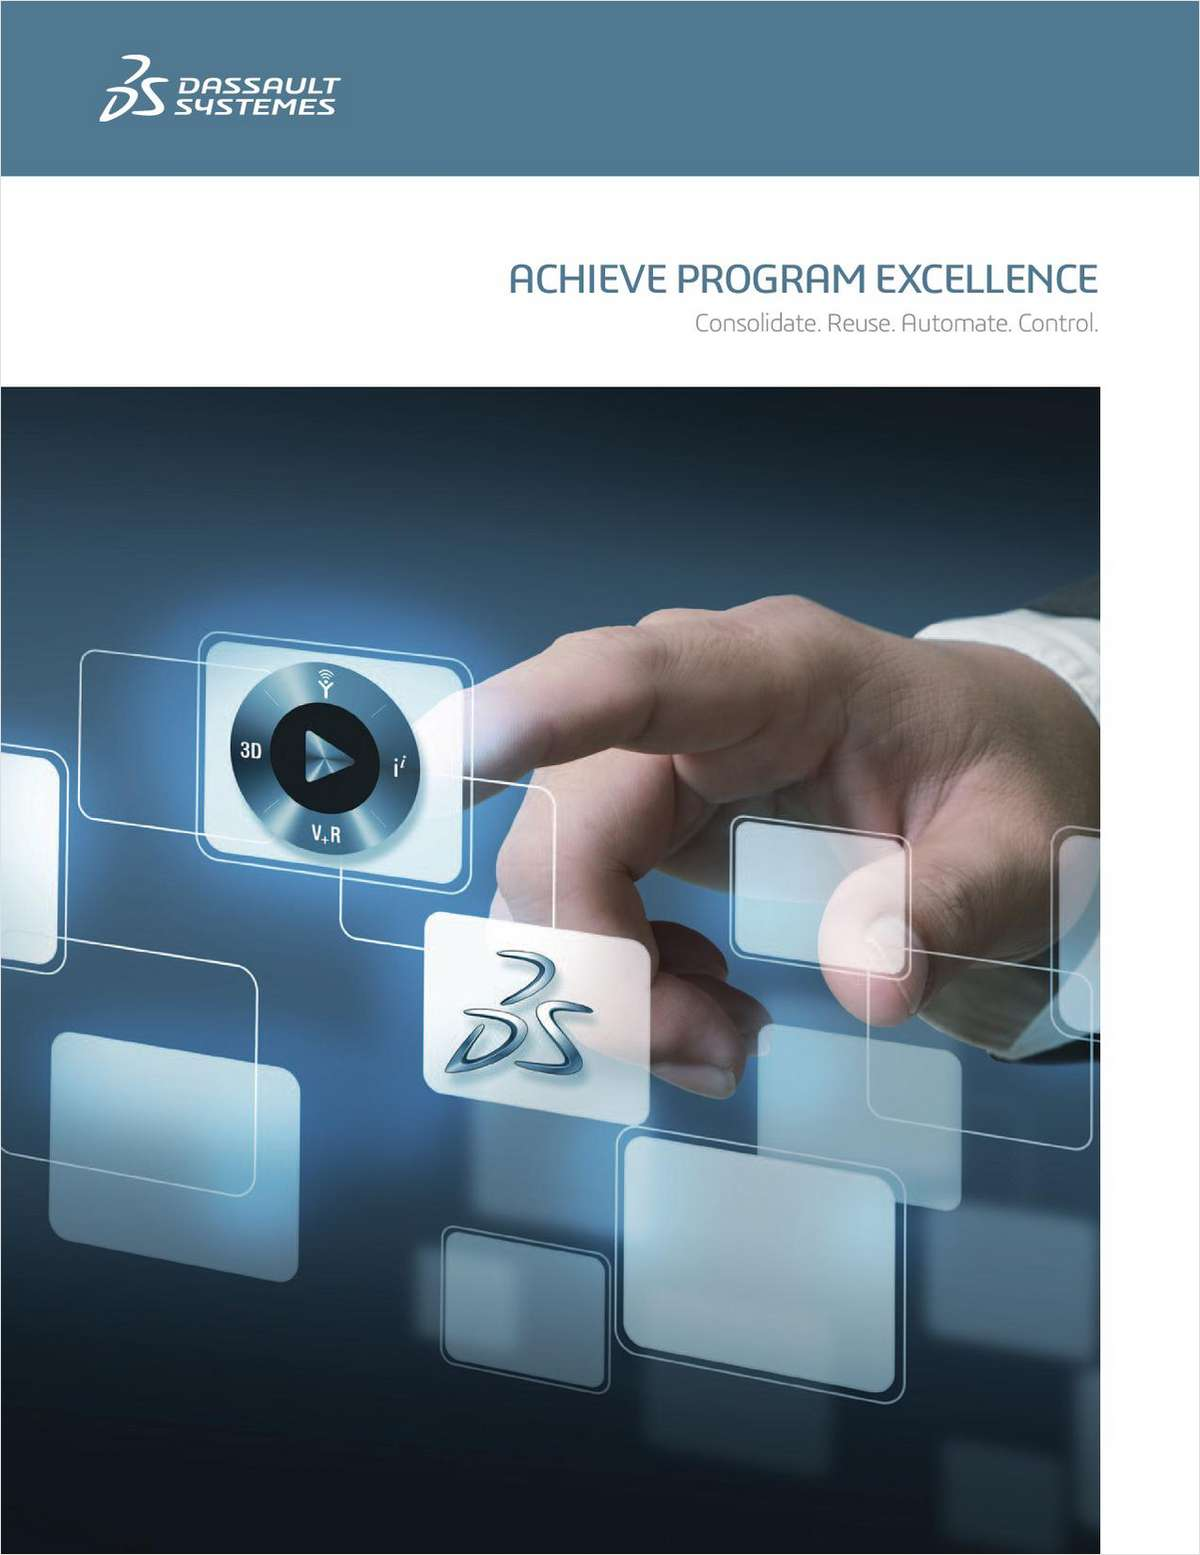 ACHIEVE PROGRAM EXCELLENCE - Consolidate. Reuse. Automate. Control.